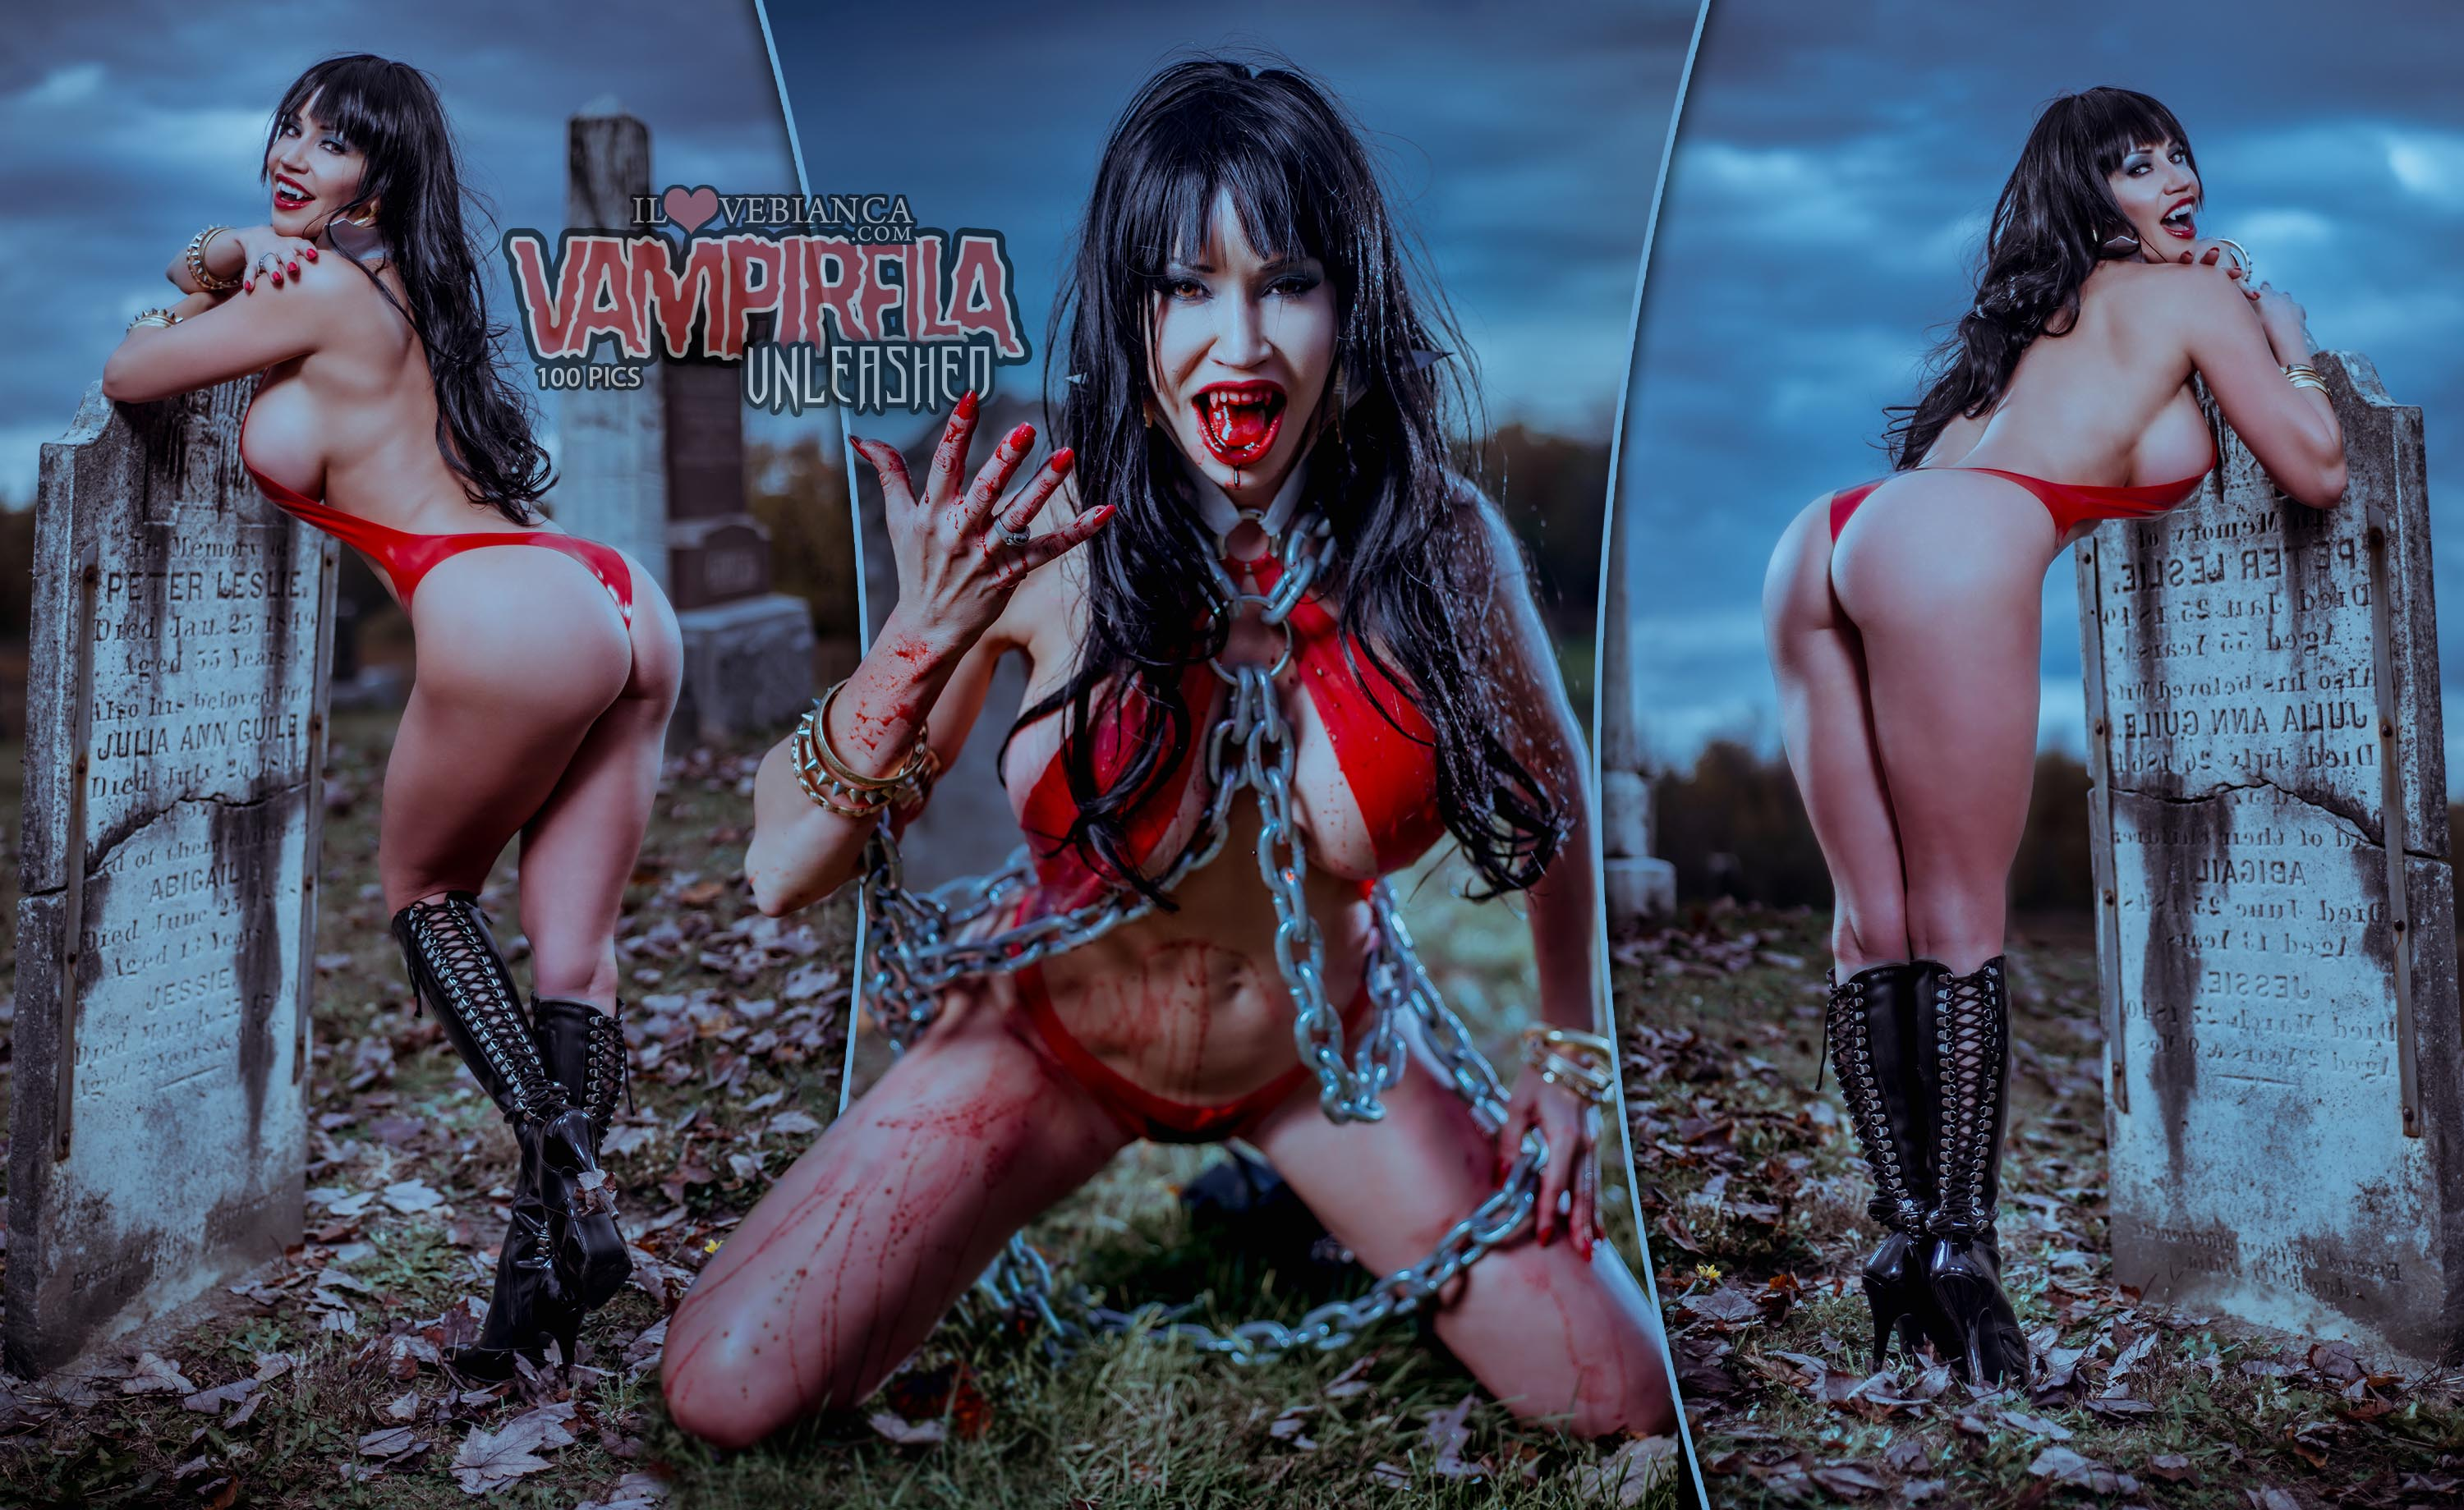 Vampirella pic xxx adult photo